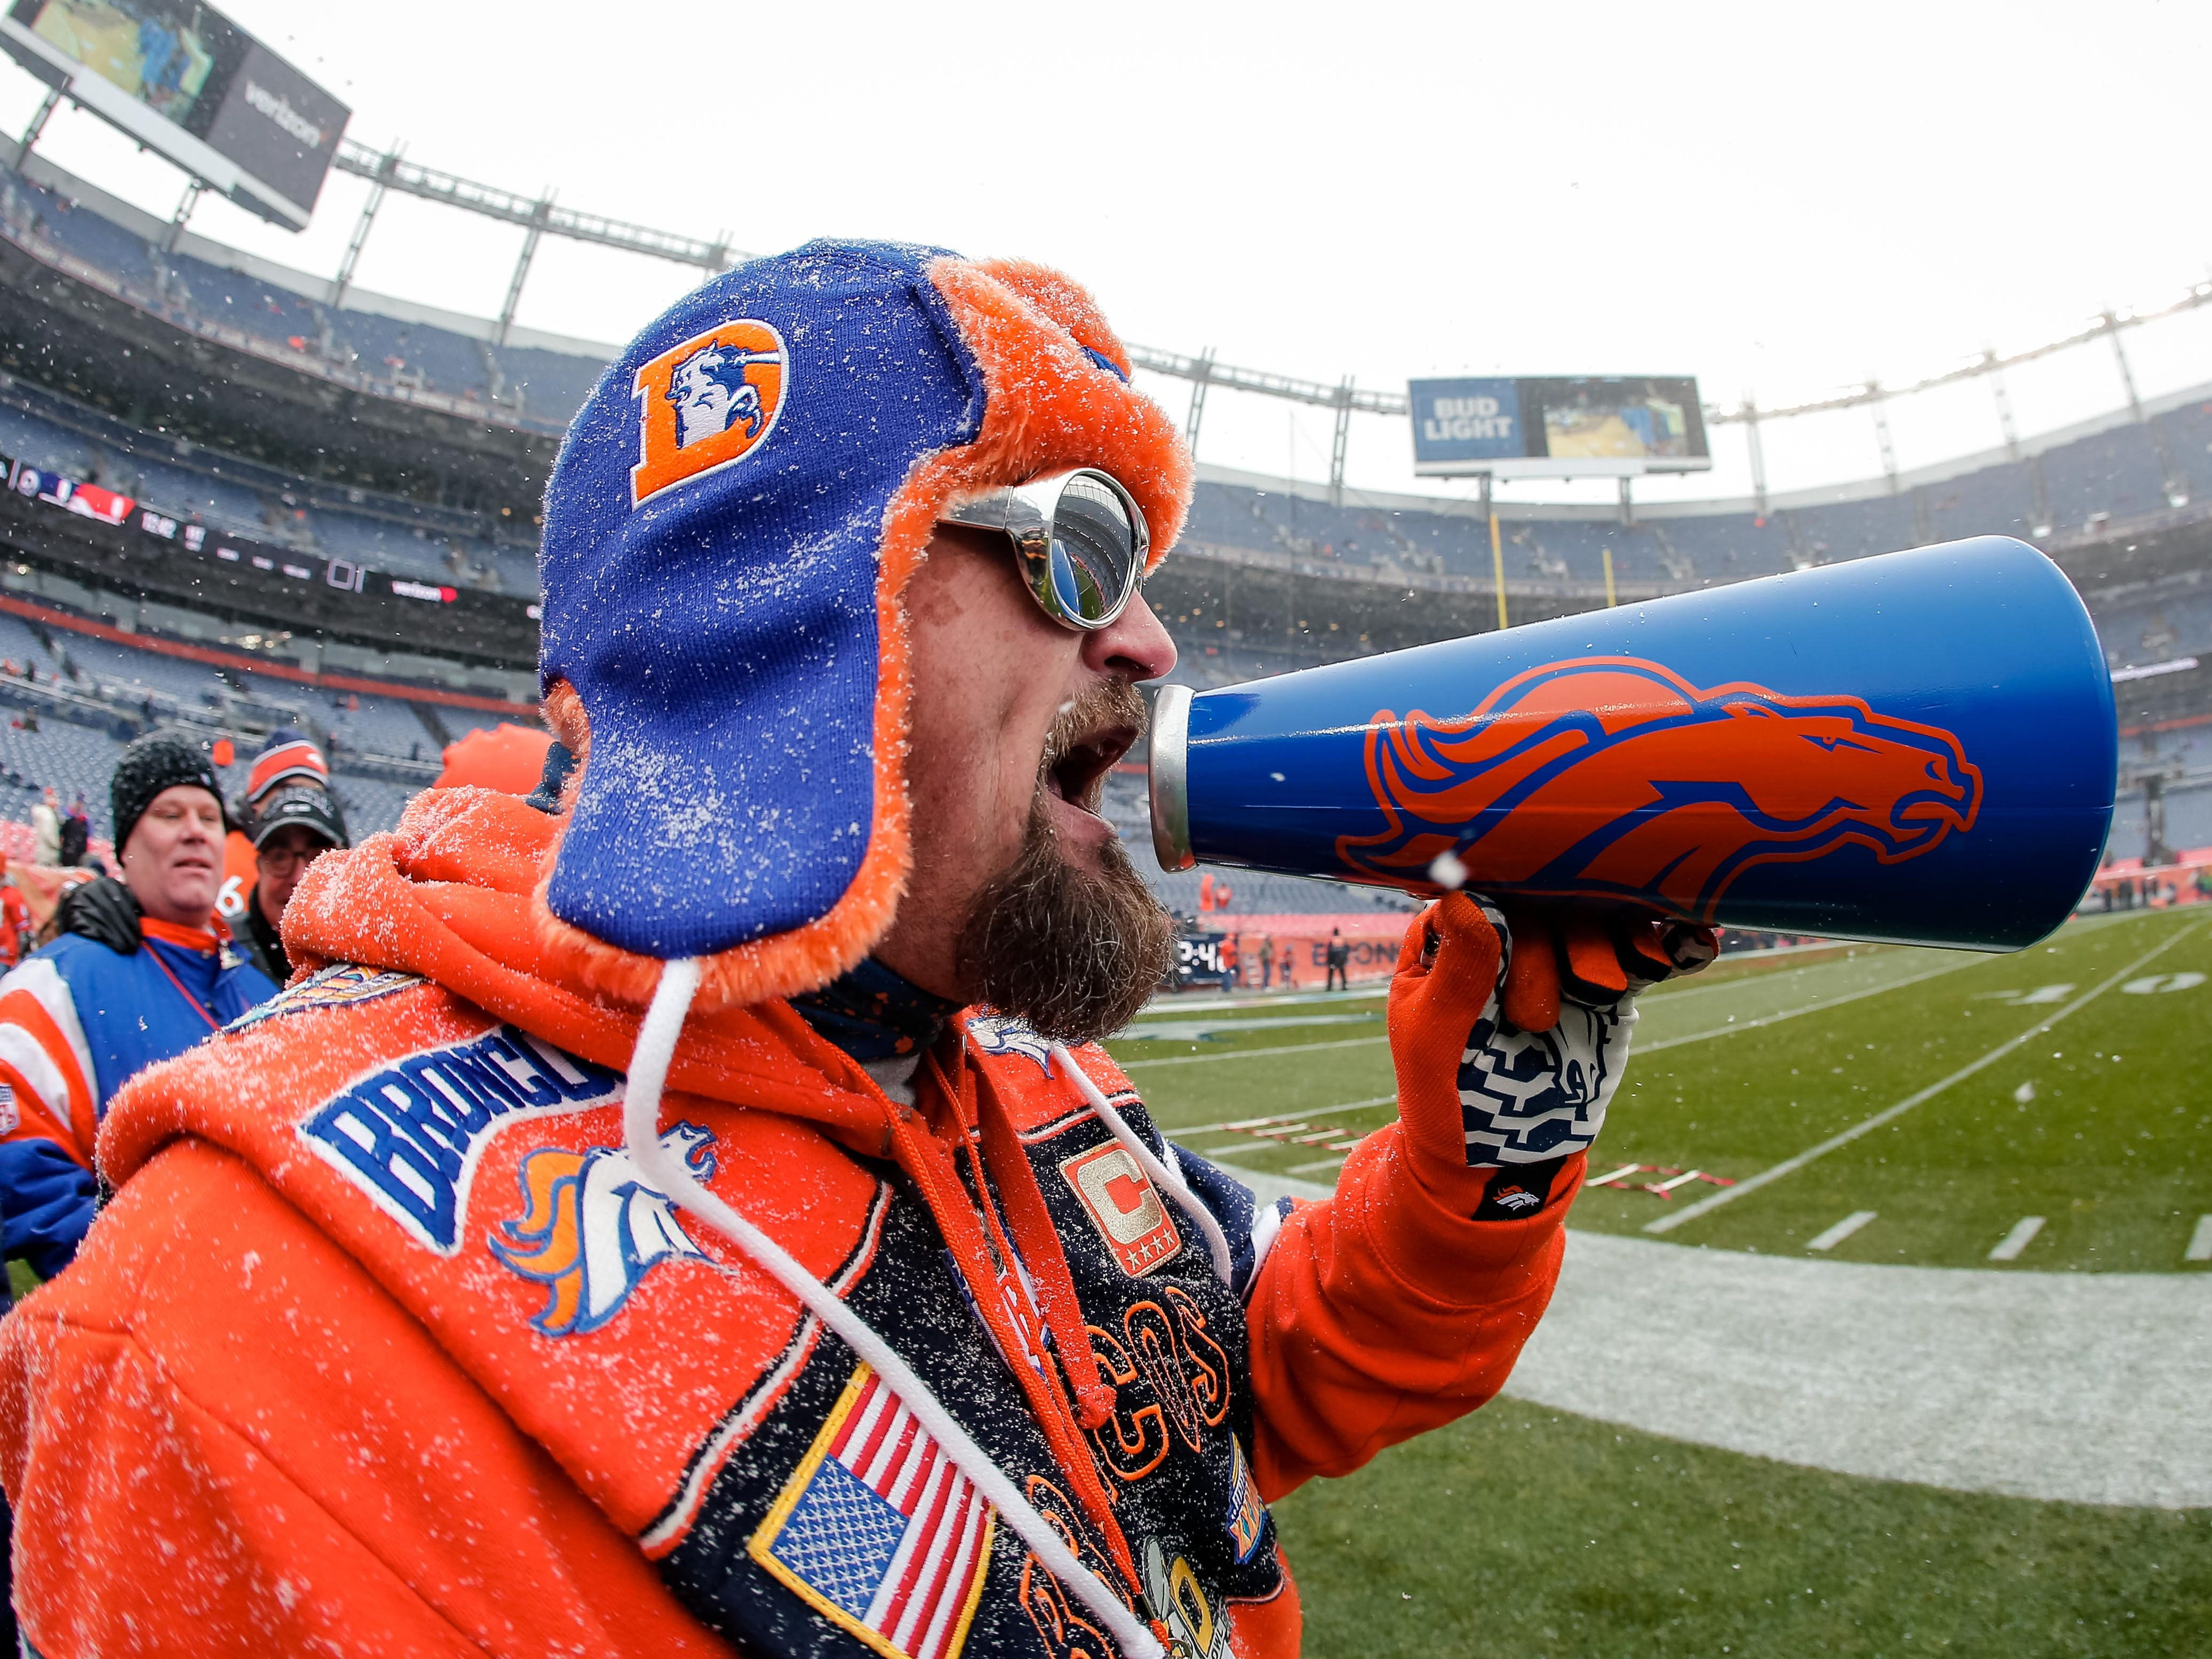 A Denver Broncos fan reacts before a game against the Los Angeles Rams at Broncos Stadium at Mile High.